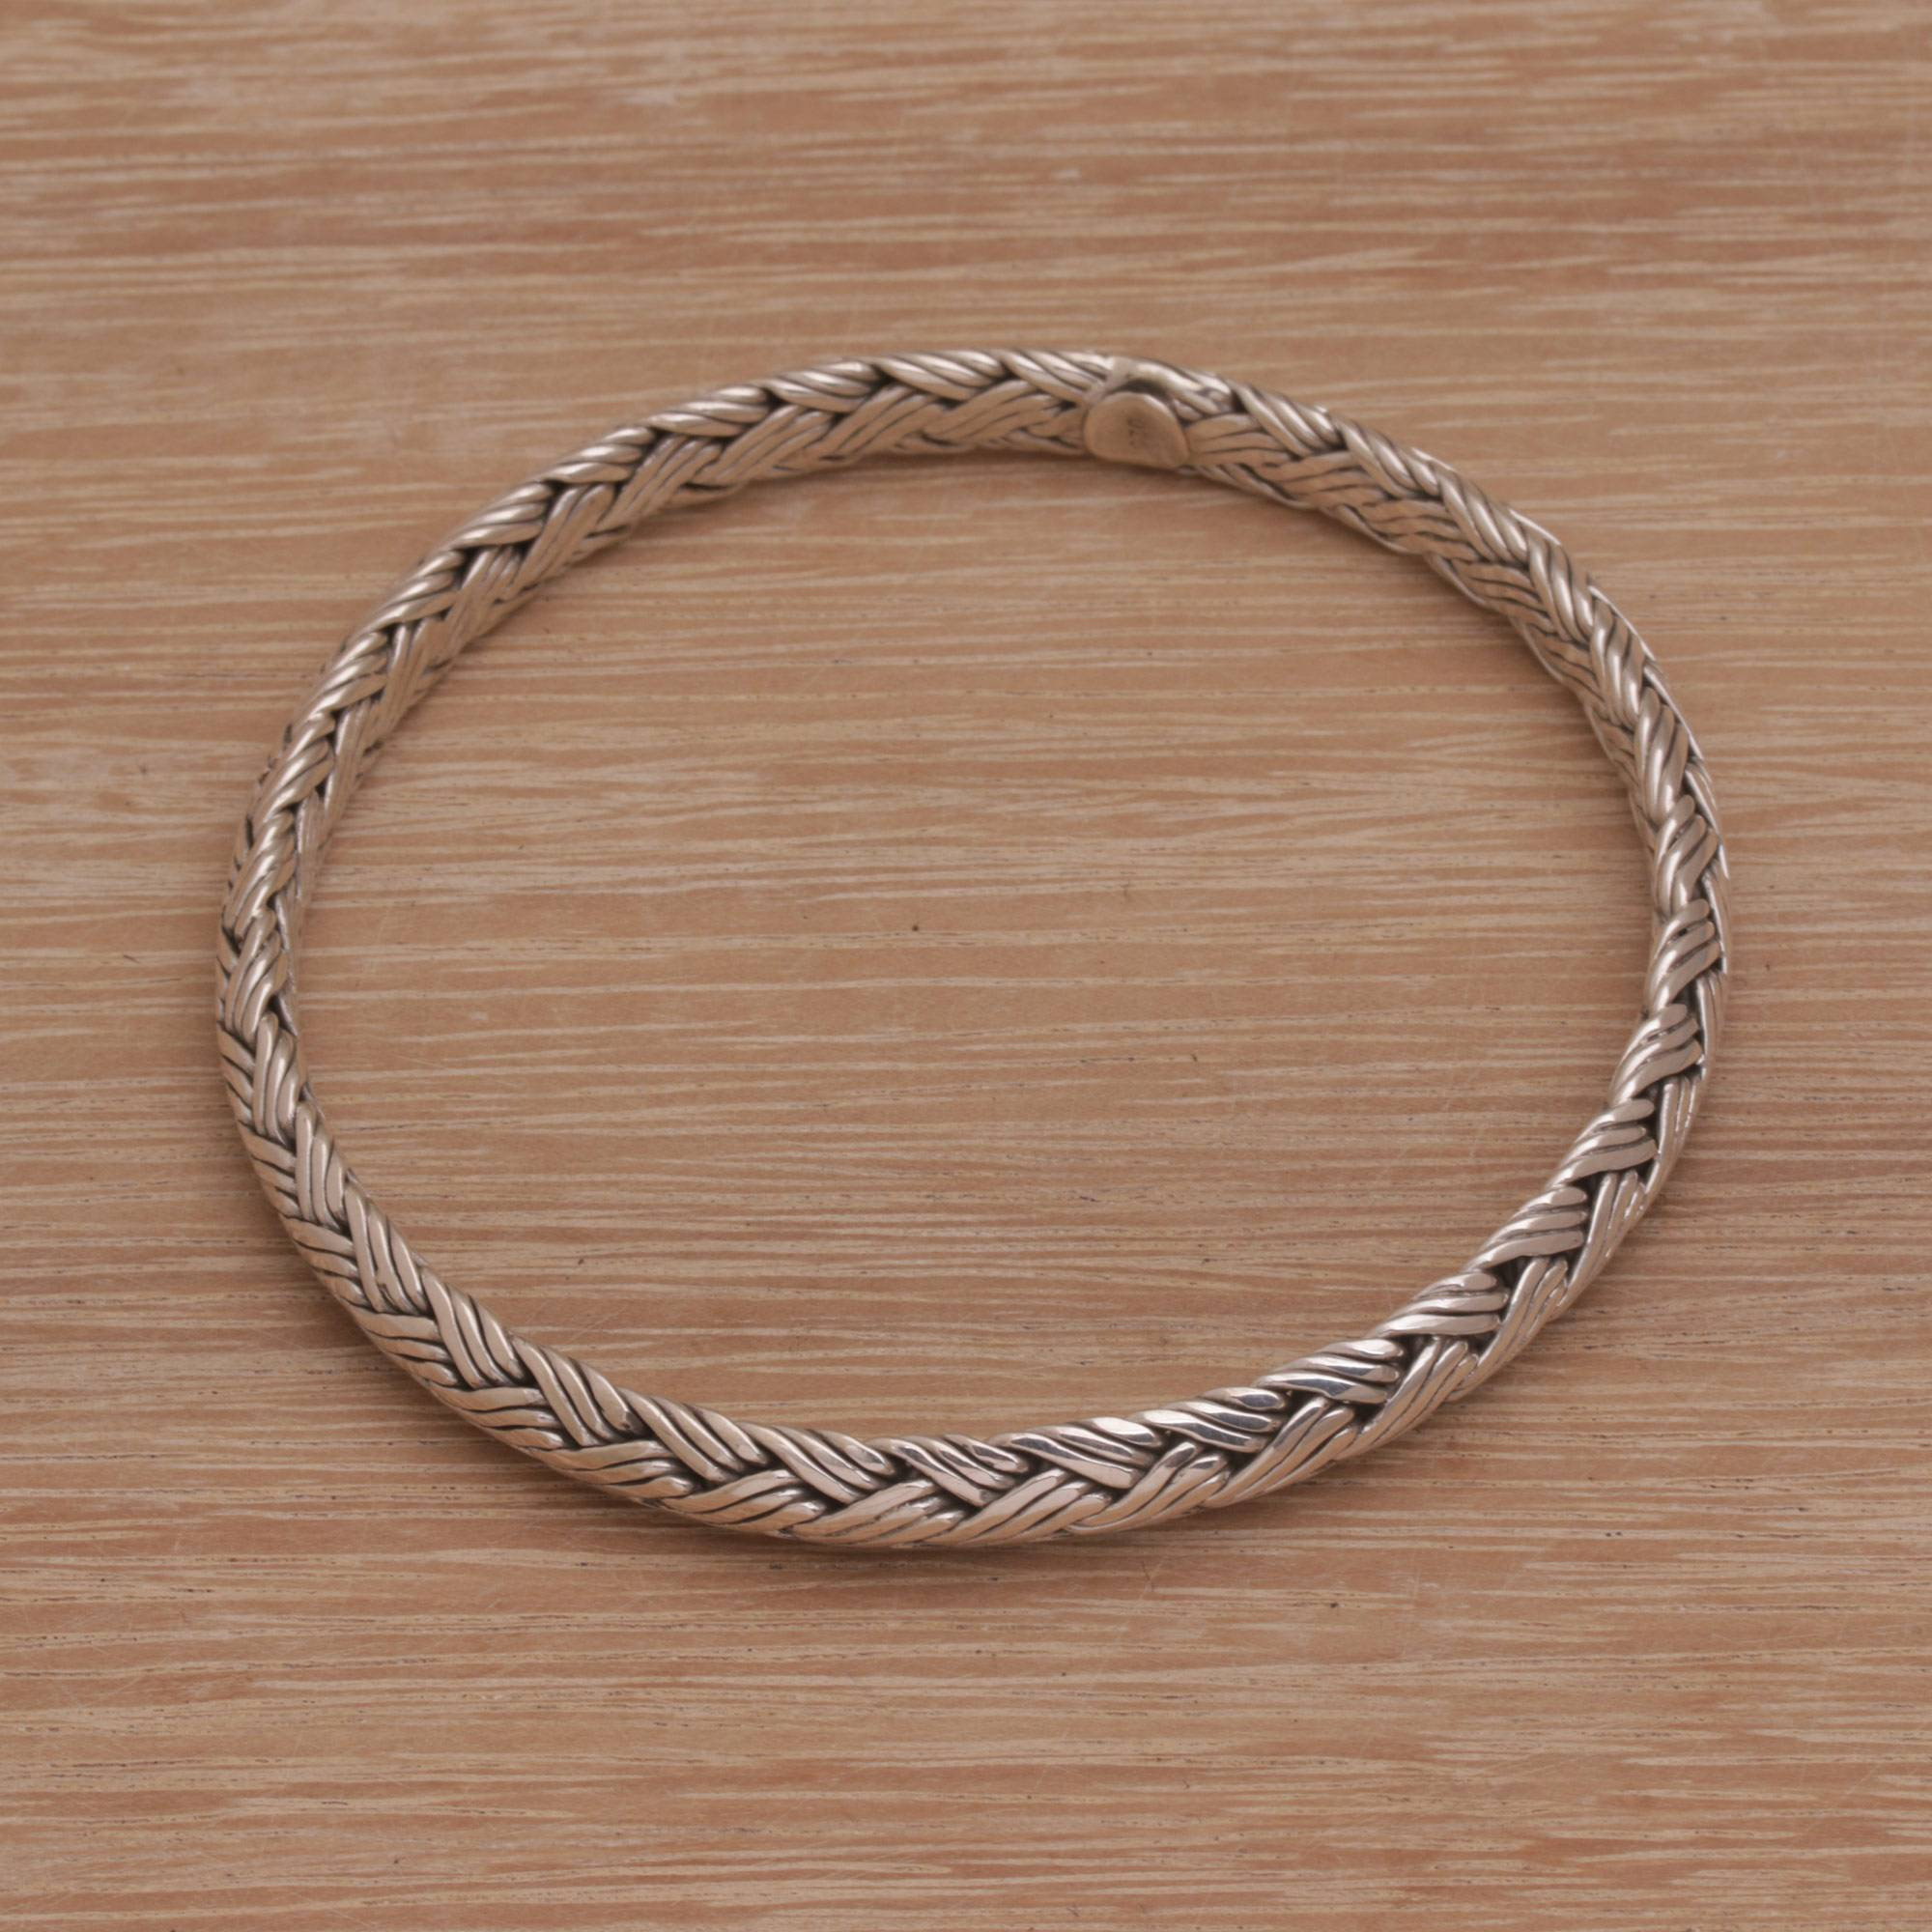 Handmade 925 Sterling Silver Bangle Bracelet Indonesia Woven Wreath